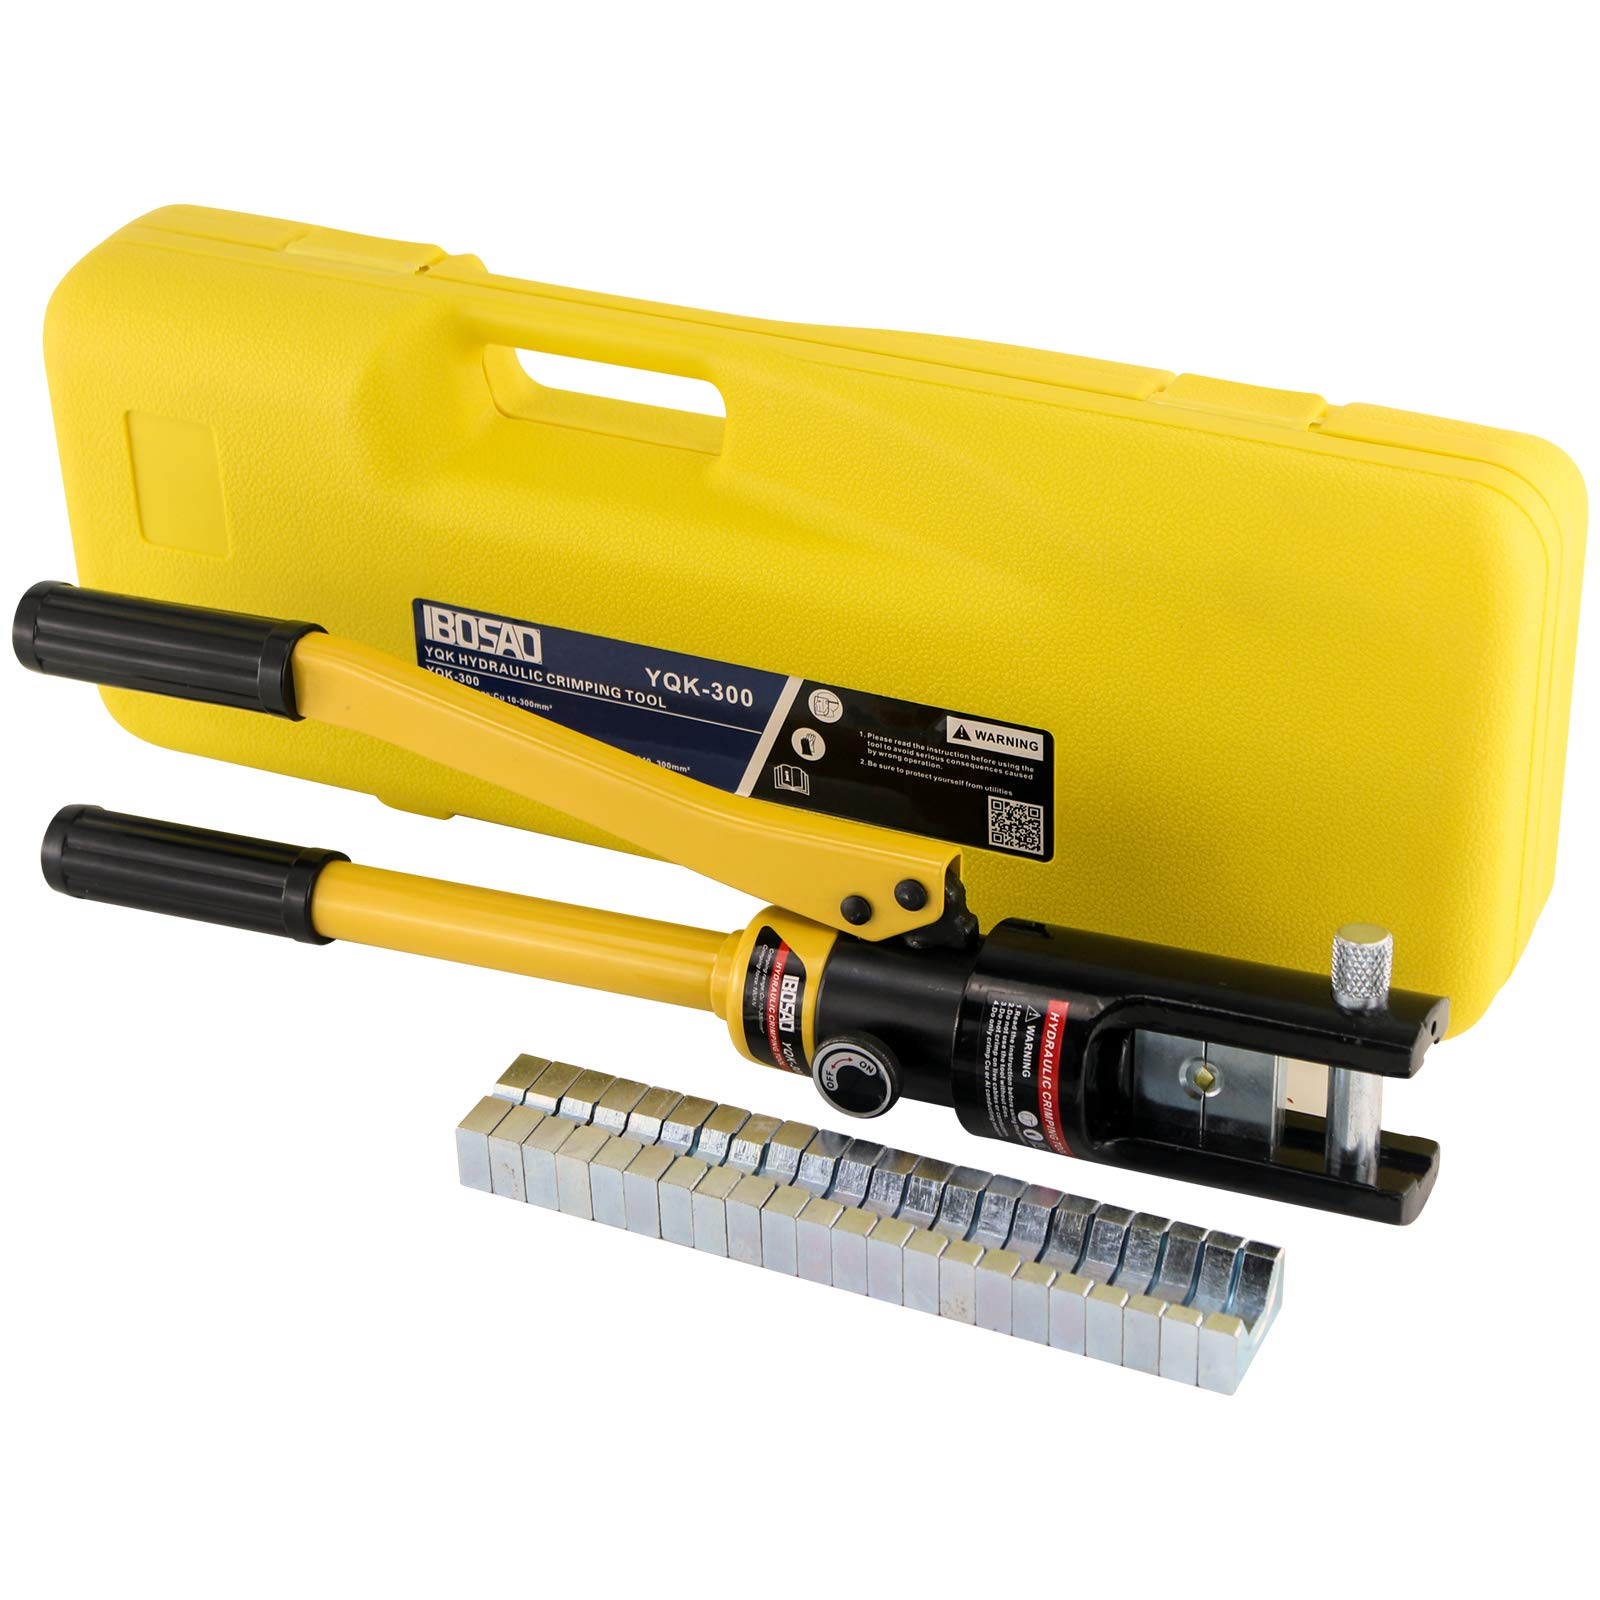 IBOSAD Hydraulic Cable Lug Crimper Crimping Tool 6 AWG-600 MCM Electrical Battery Terminal Cable Wire Tool Kit Wire